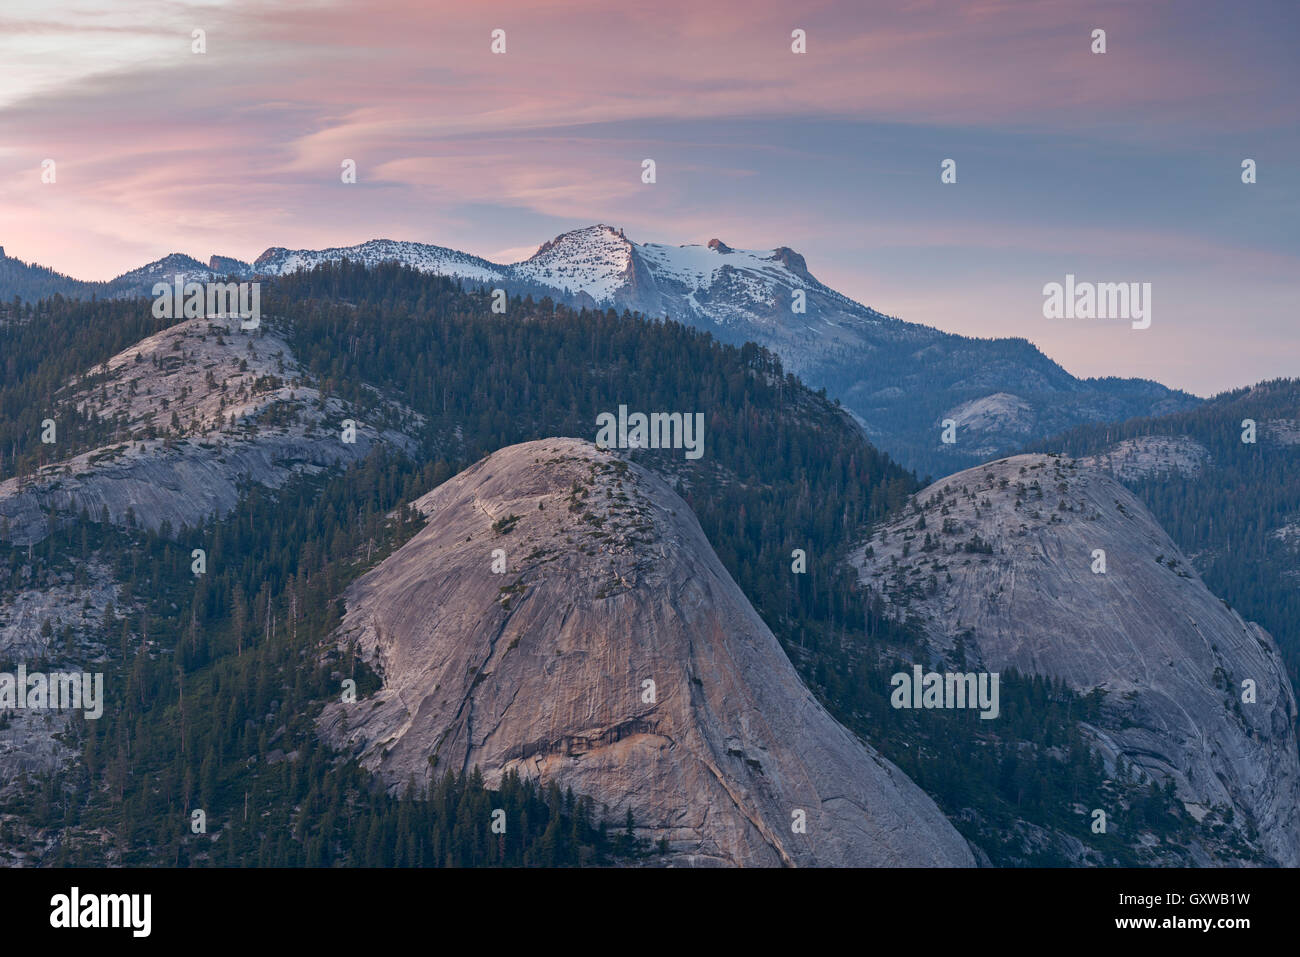 North Dome & Basket Dome with snow covered  Mount Hoffmann beyond, Yosemite National Park, California, USA. - Stock Image